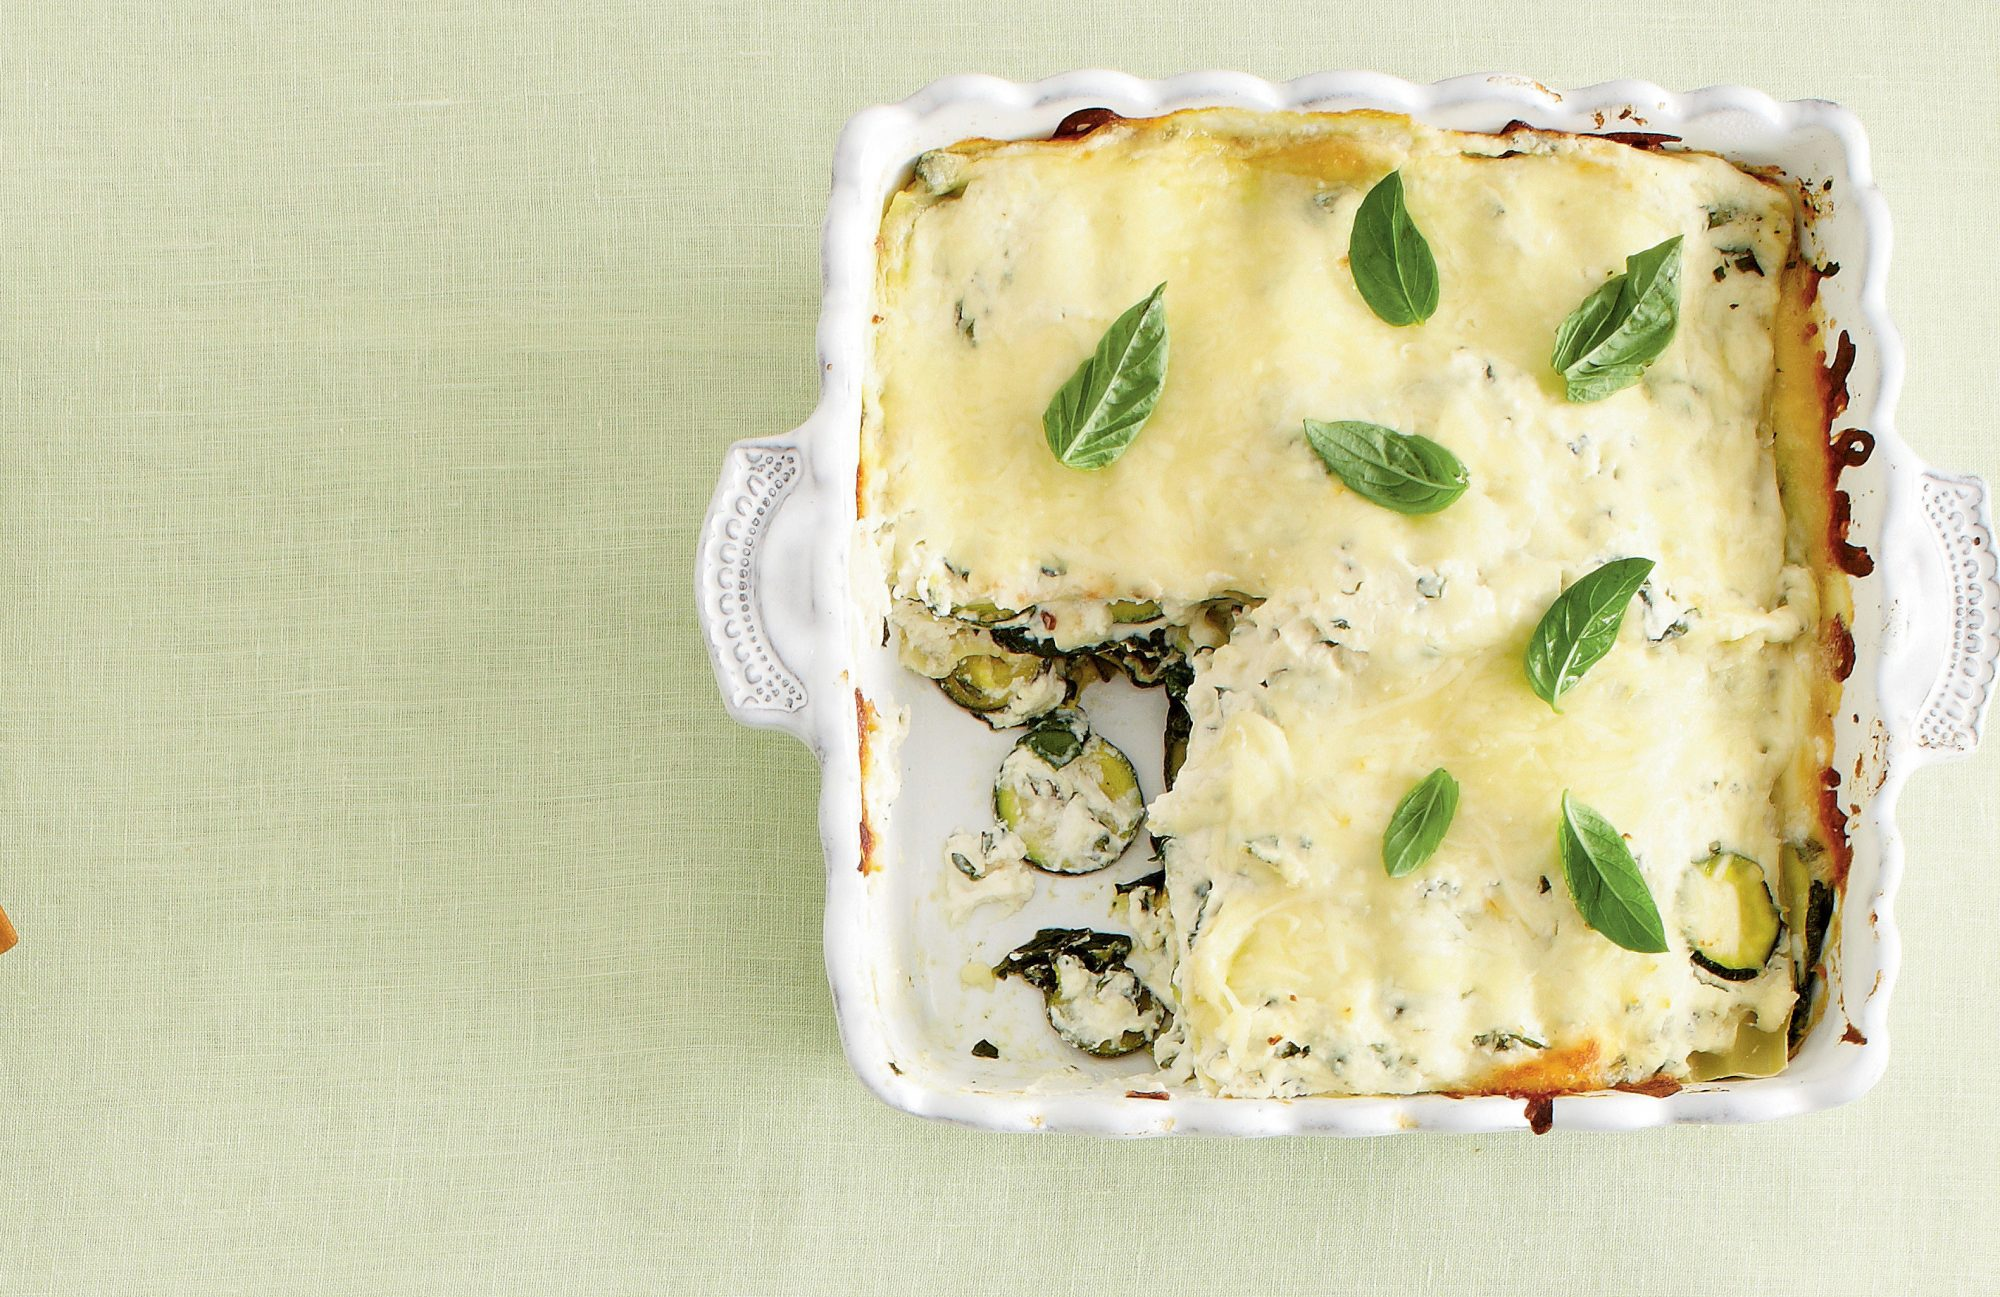 8x8 Casserole Recipes That Perfectly Fit a Family of Four